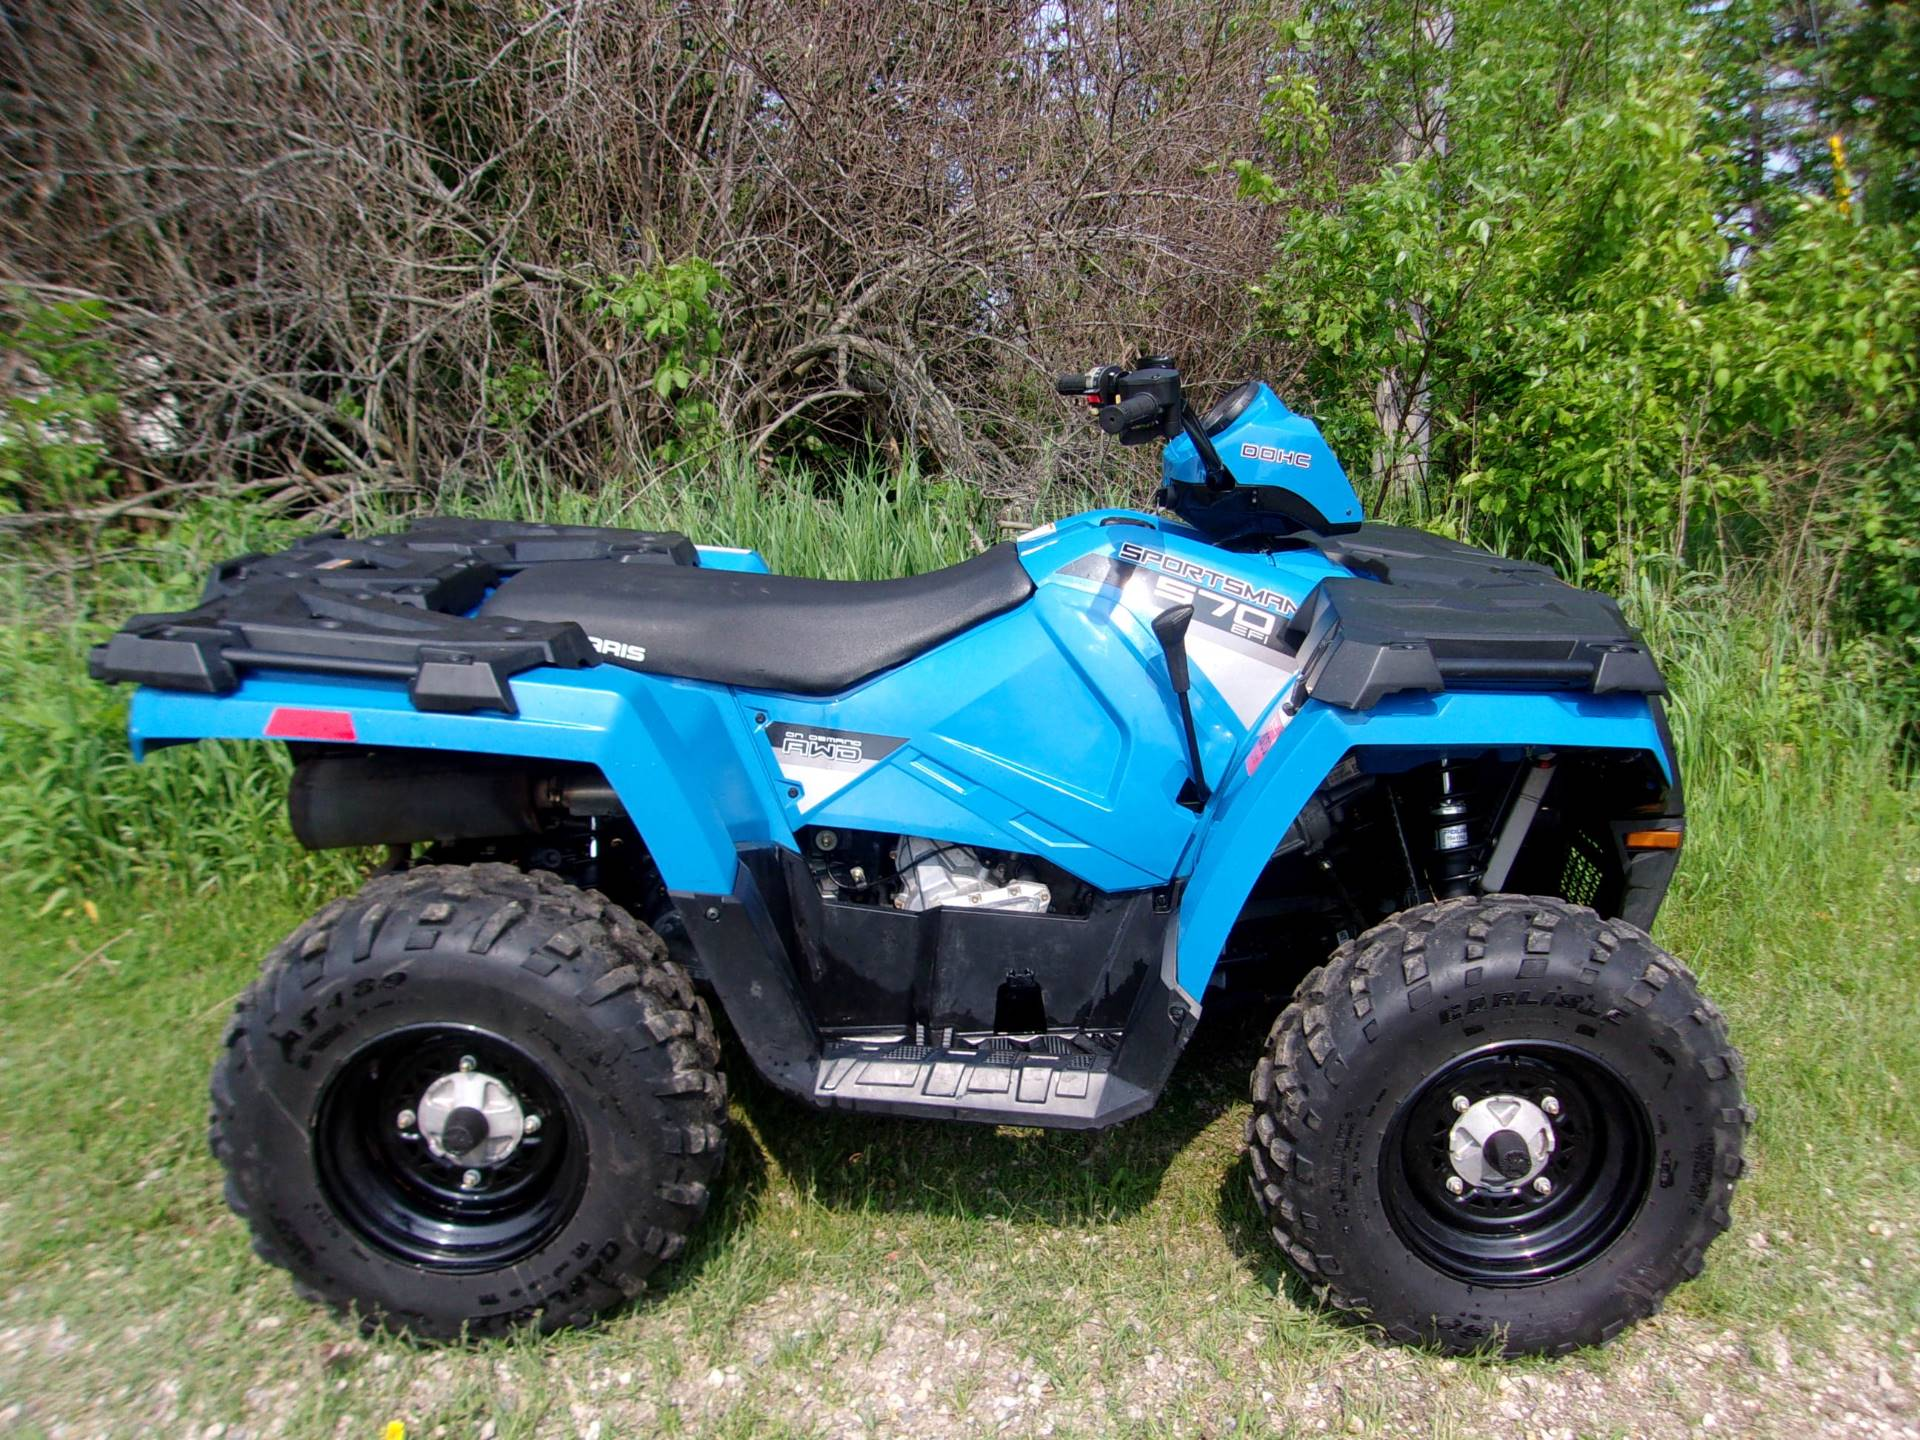 2016 Polaris Sportsman 570 EPS in Mukwonago, Wisconsin - Photo 2